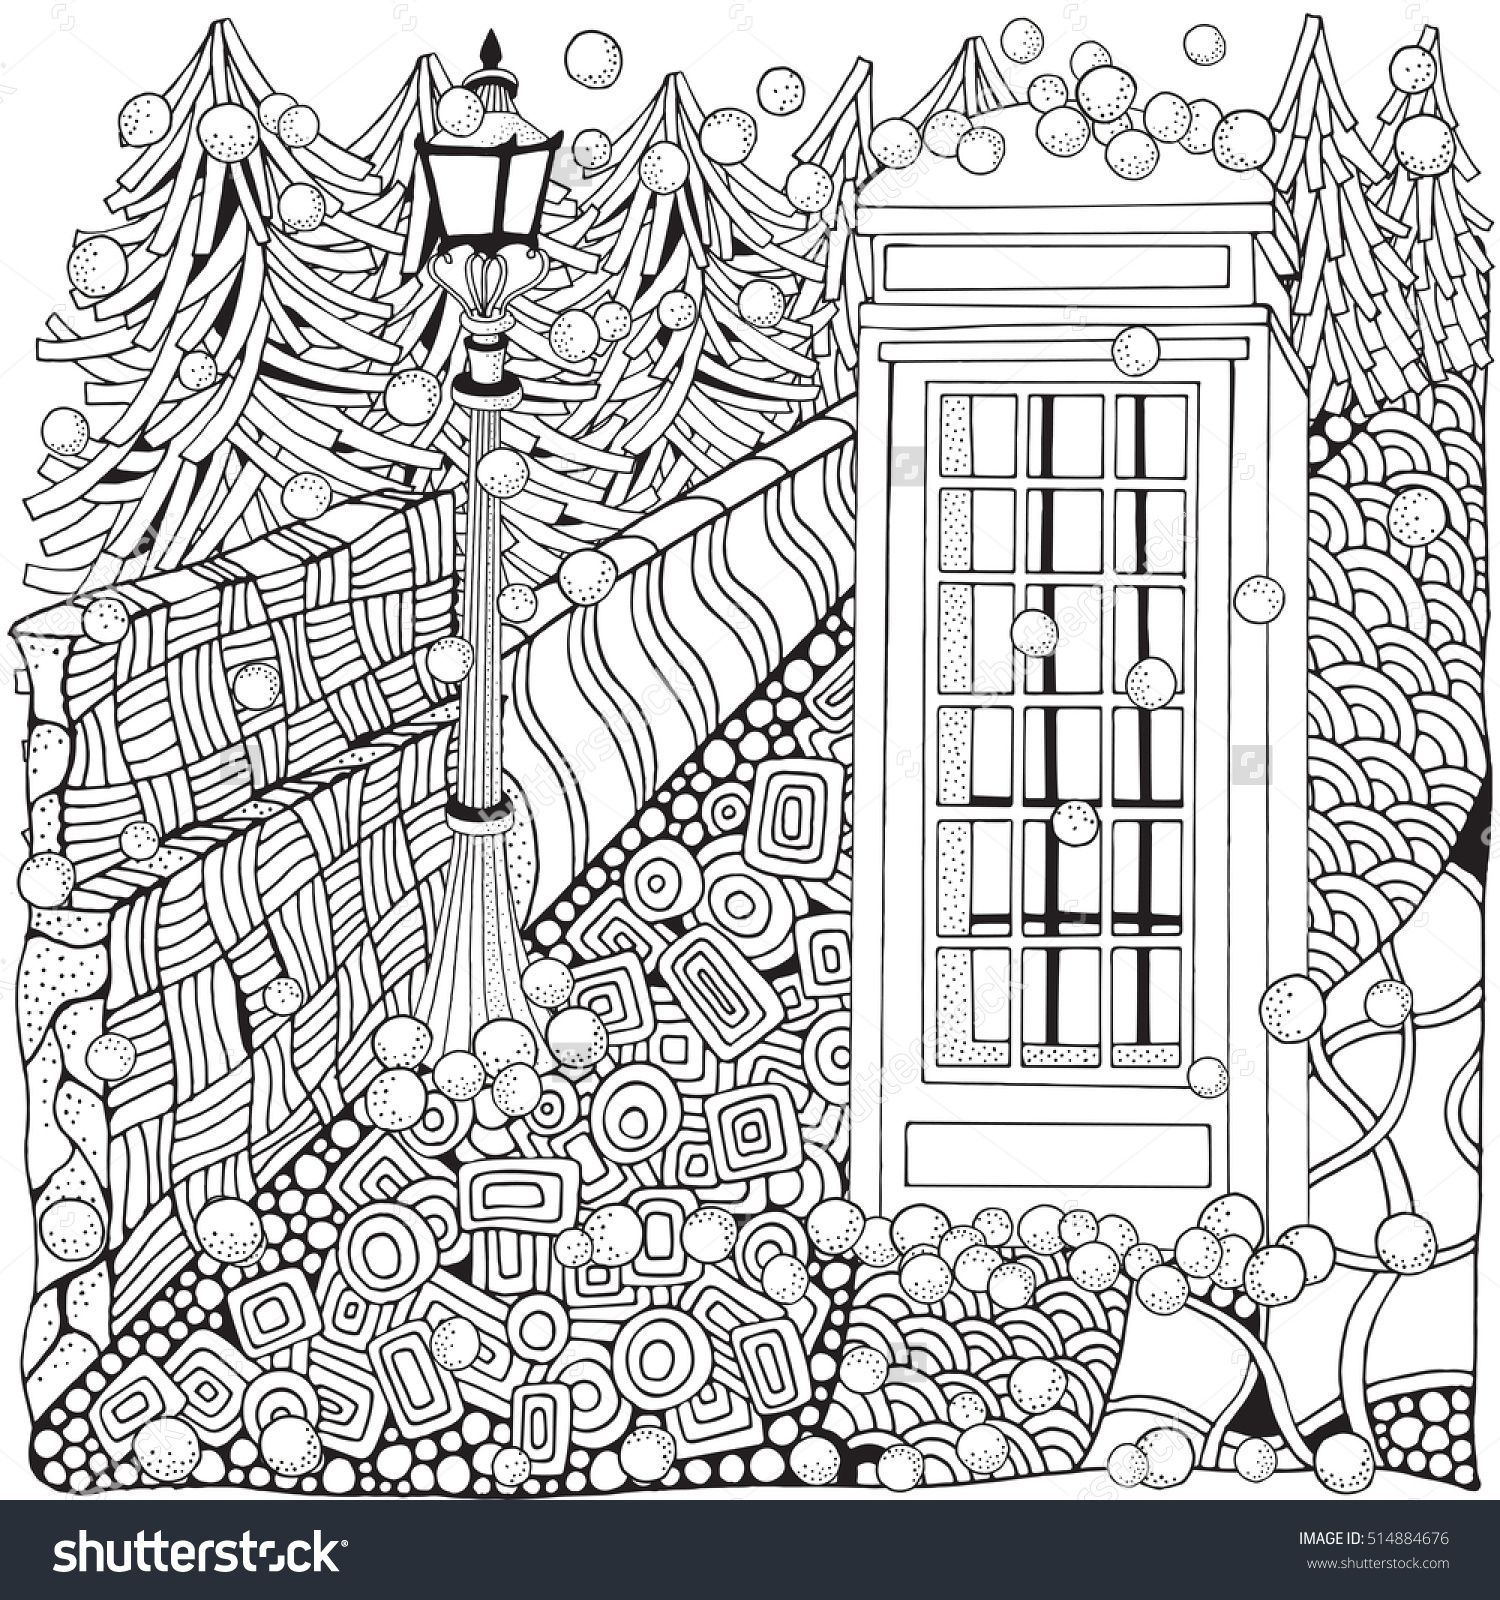 winter coloring book phone booth door snowing english red